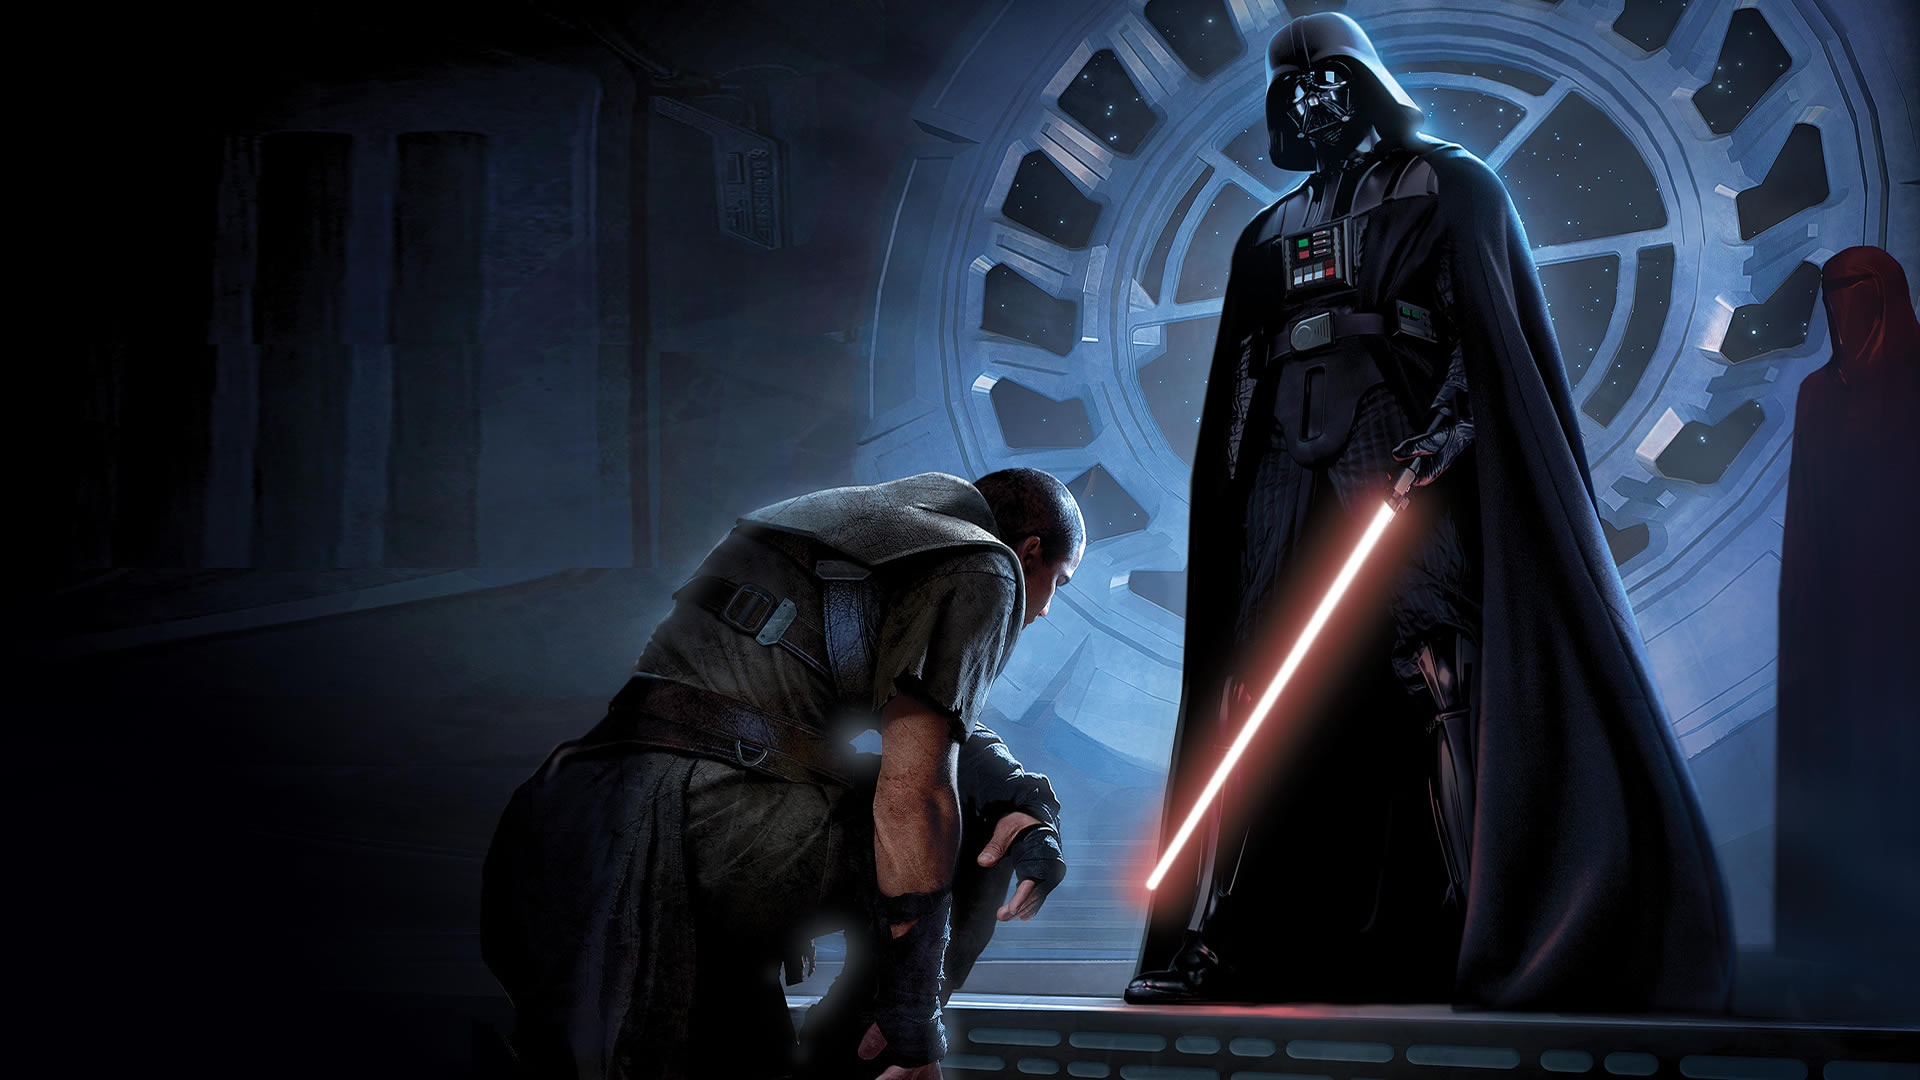 star_wars_darth_vader-sith-dark-lord-wallpaper